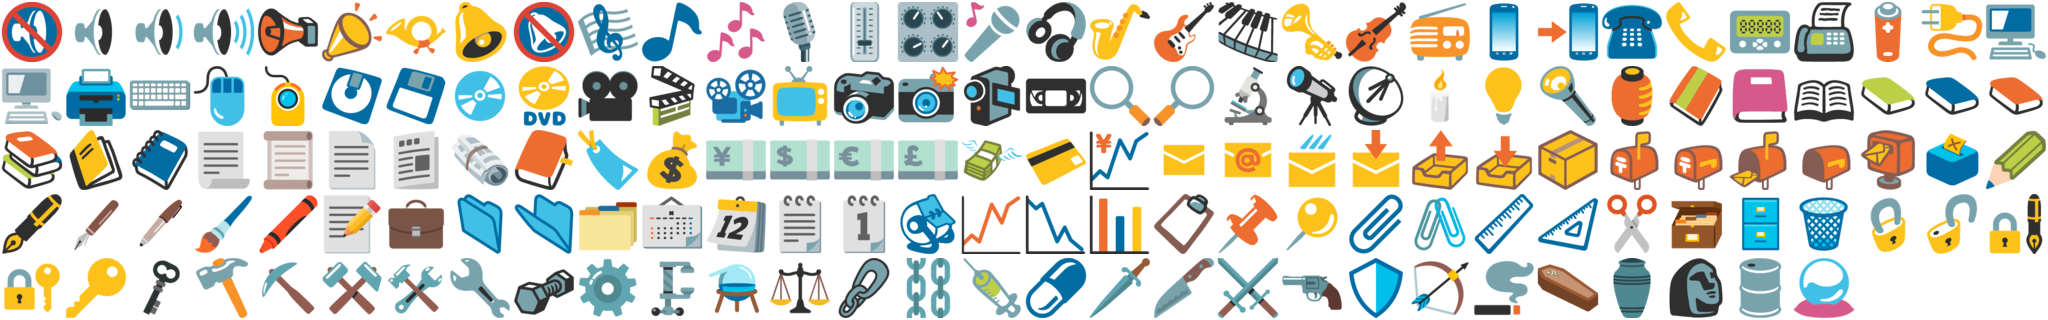 briar-android/src/main/assets/emoji_objects.png